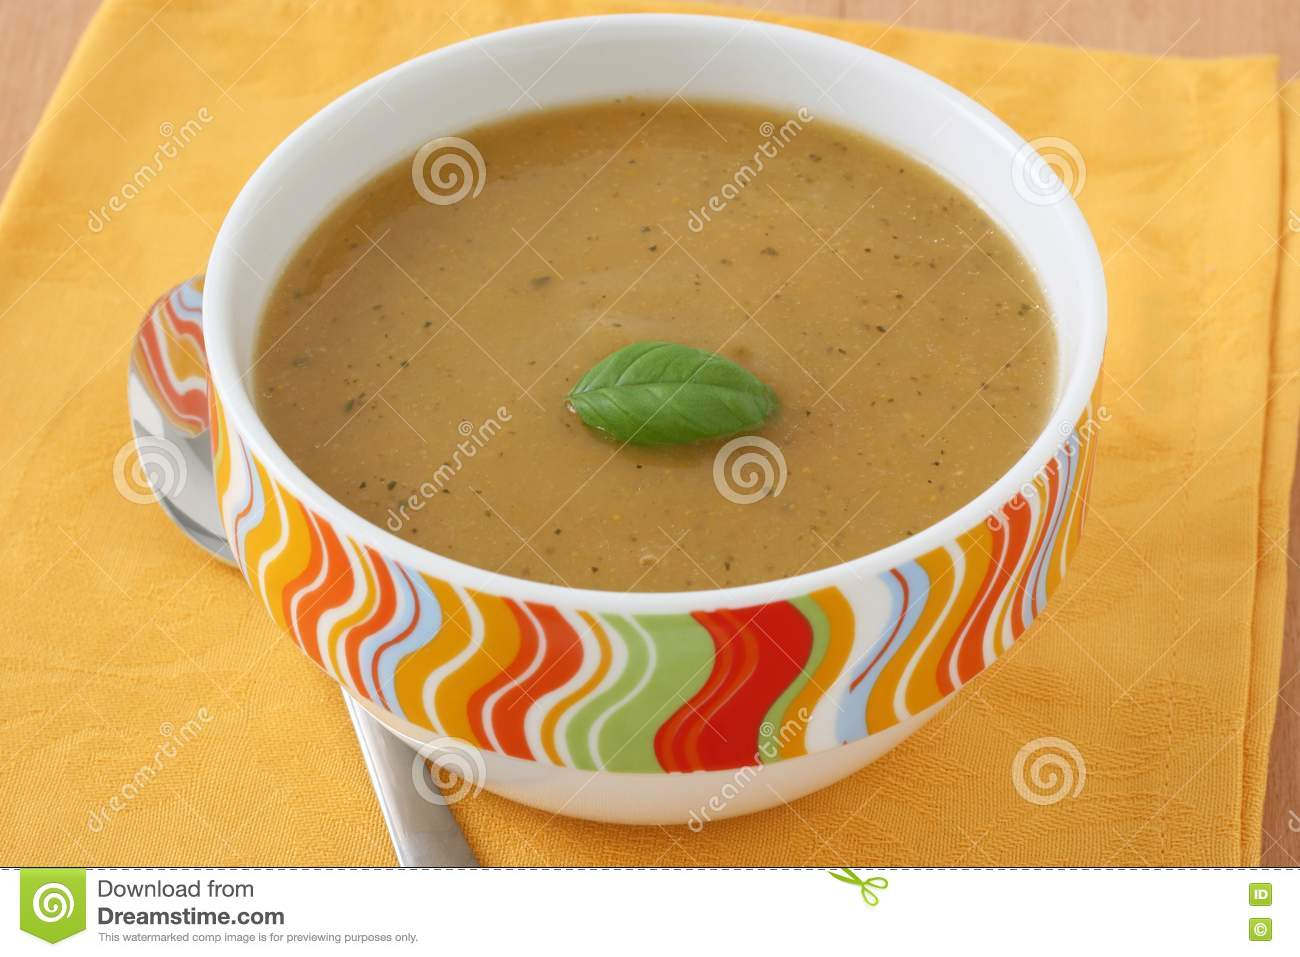 Vegetable Soup With Basil Royalty Free Stock Photo - Image: 19466405